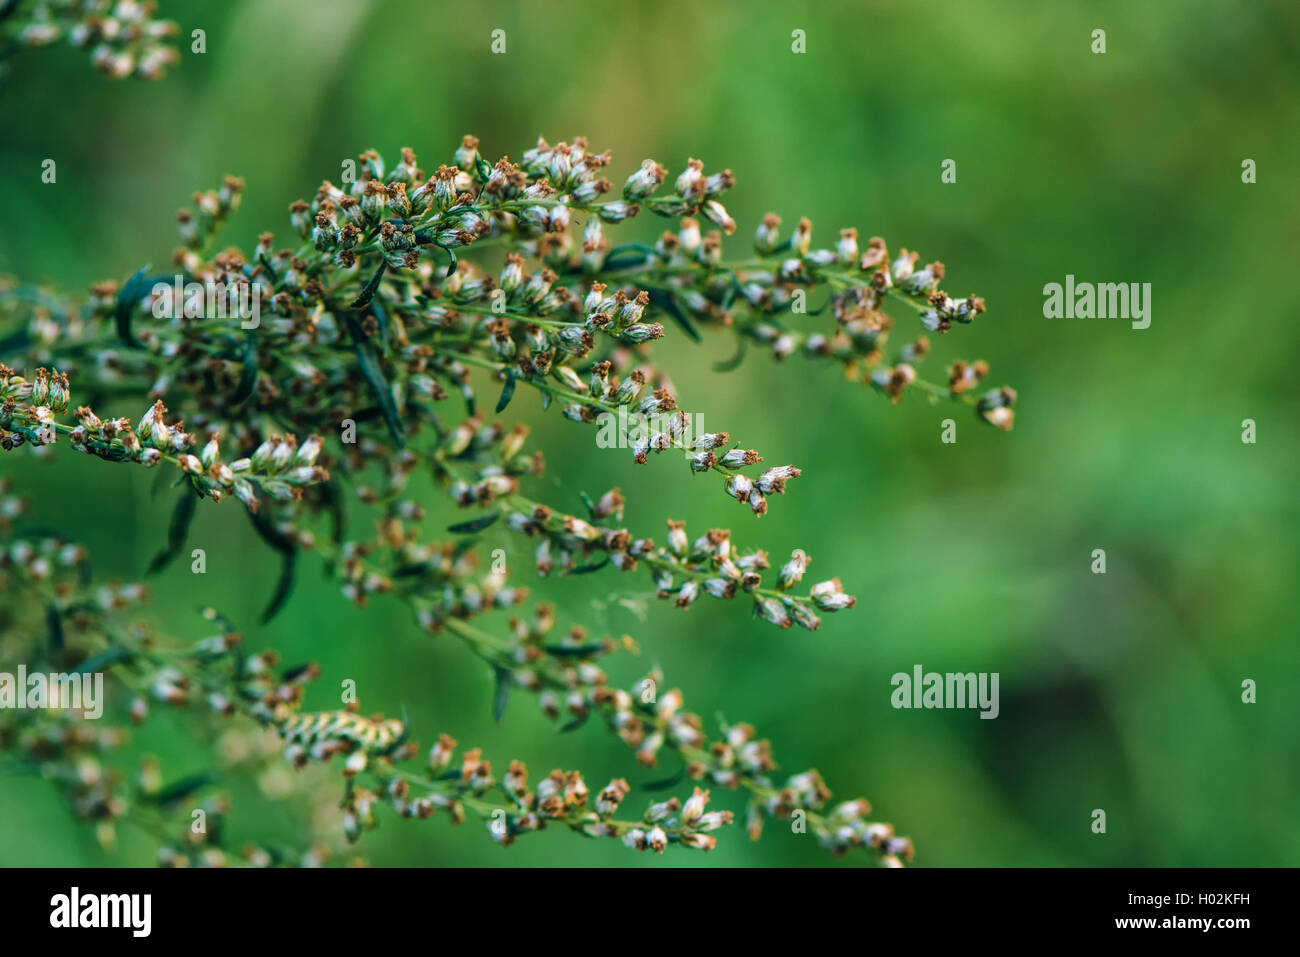 Ragweed or ambrosia plant, its pollen is notorious for causing allergic reactions in humans, selective focus Stock Photo